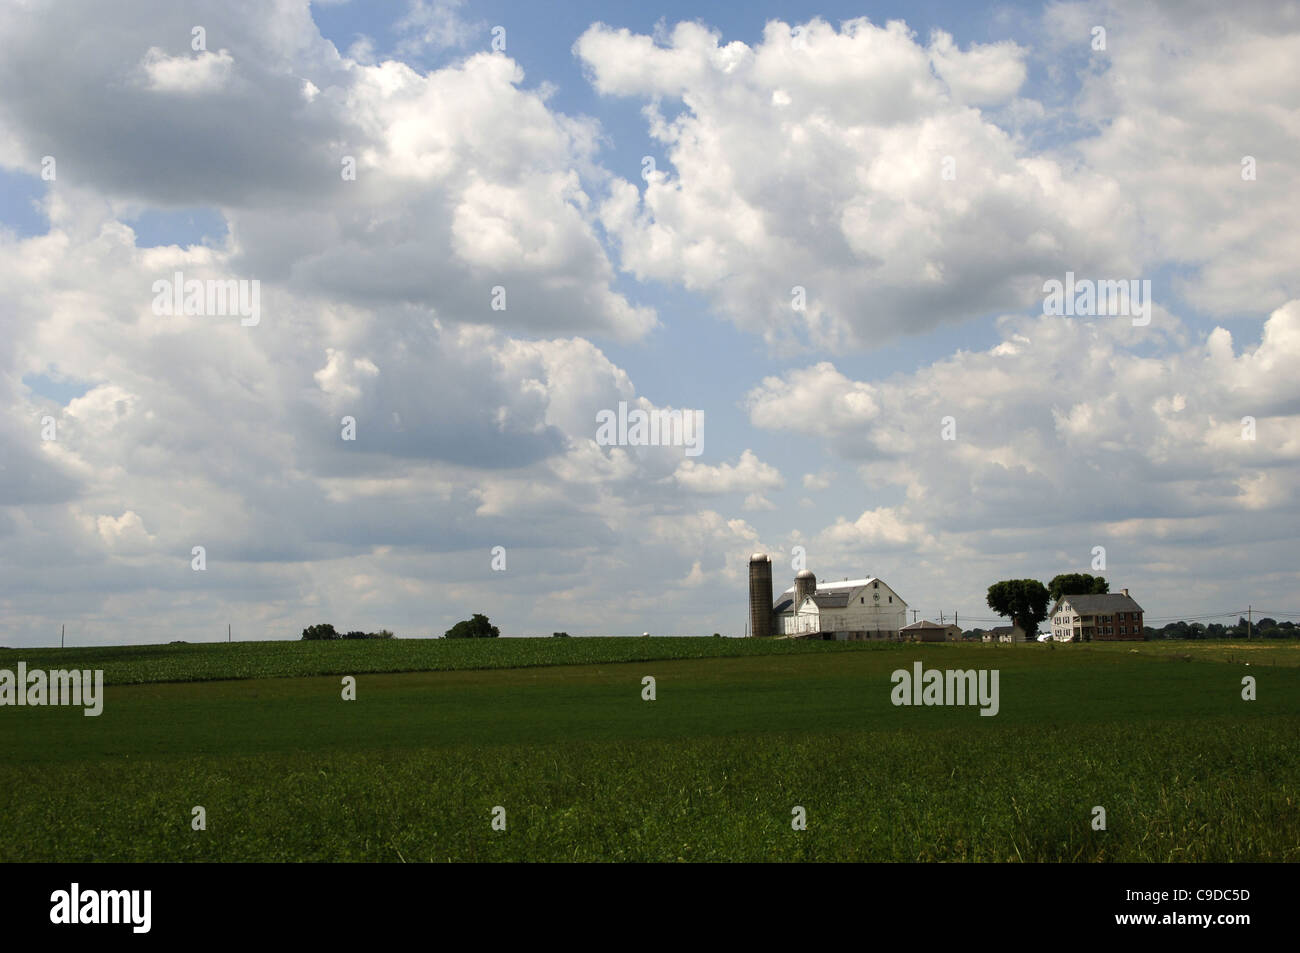 Amish Community. Lancaster County. United States. - Stock Image